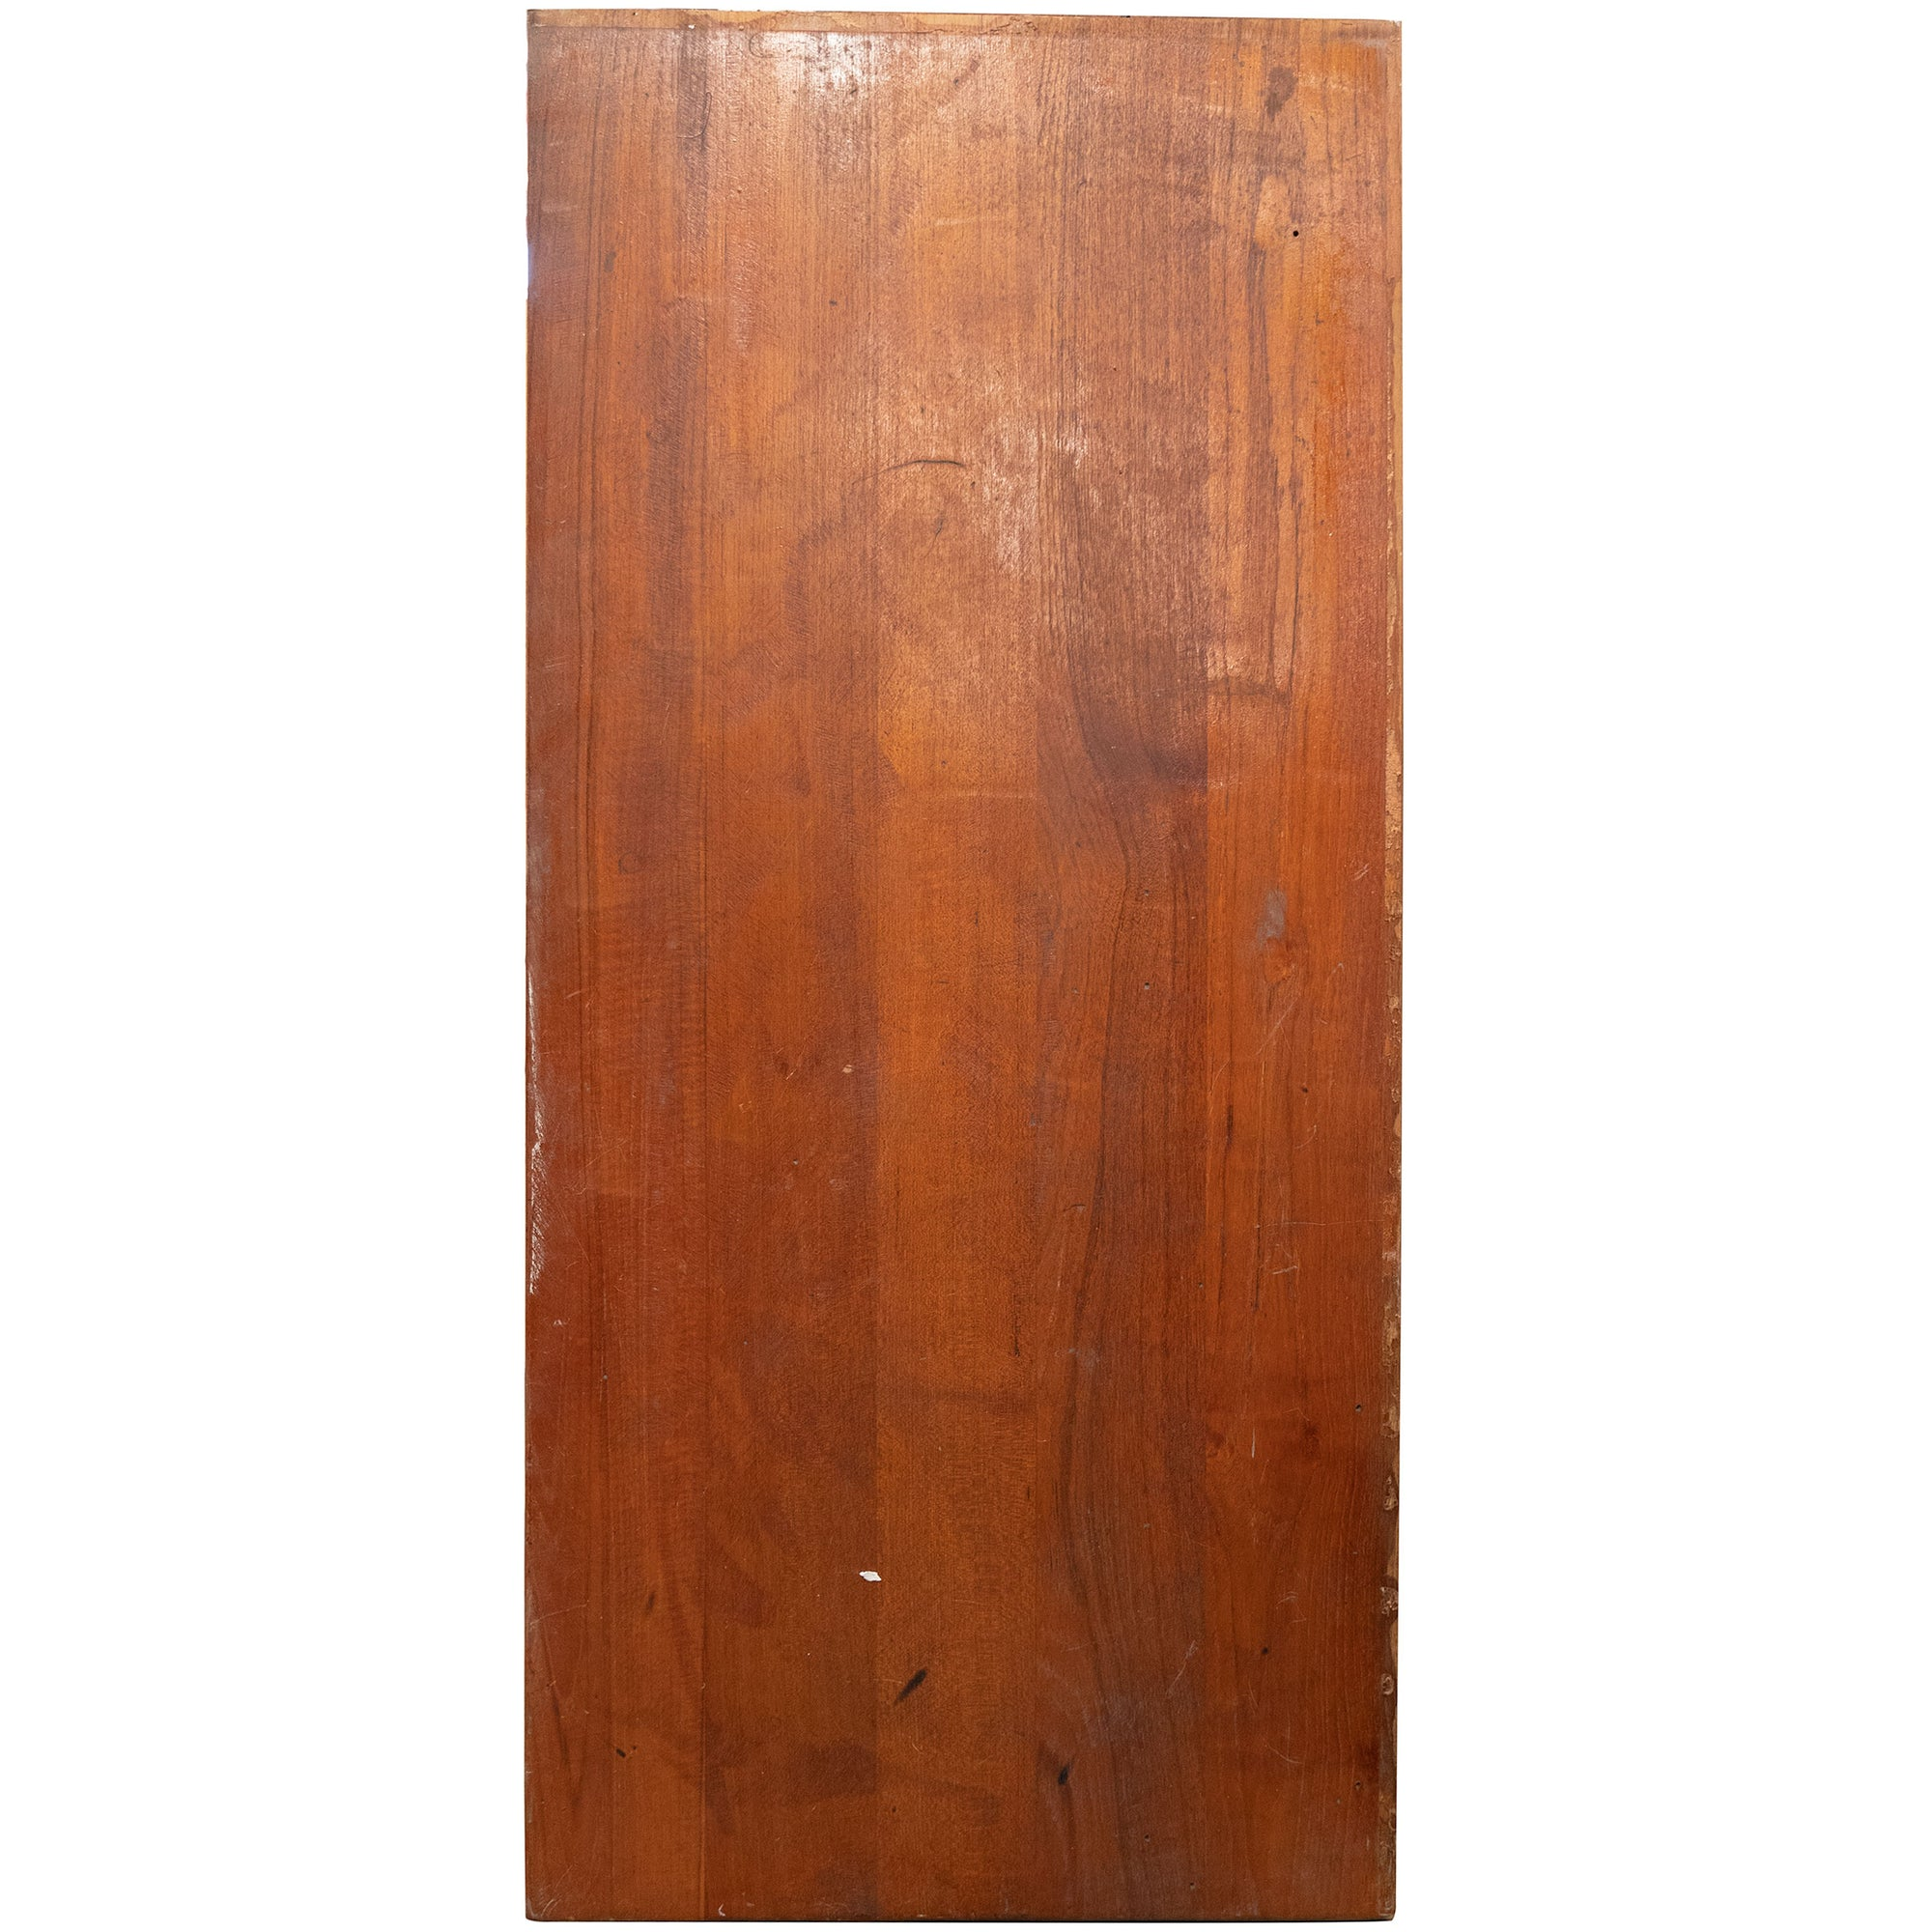 Reclaimed Teak / Iroko Worktop 129 X 69cm - architectural-forum